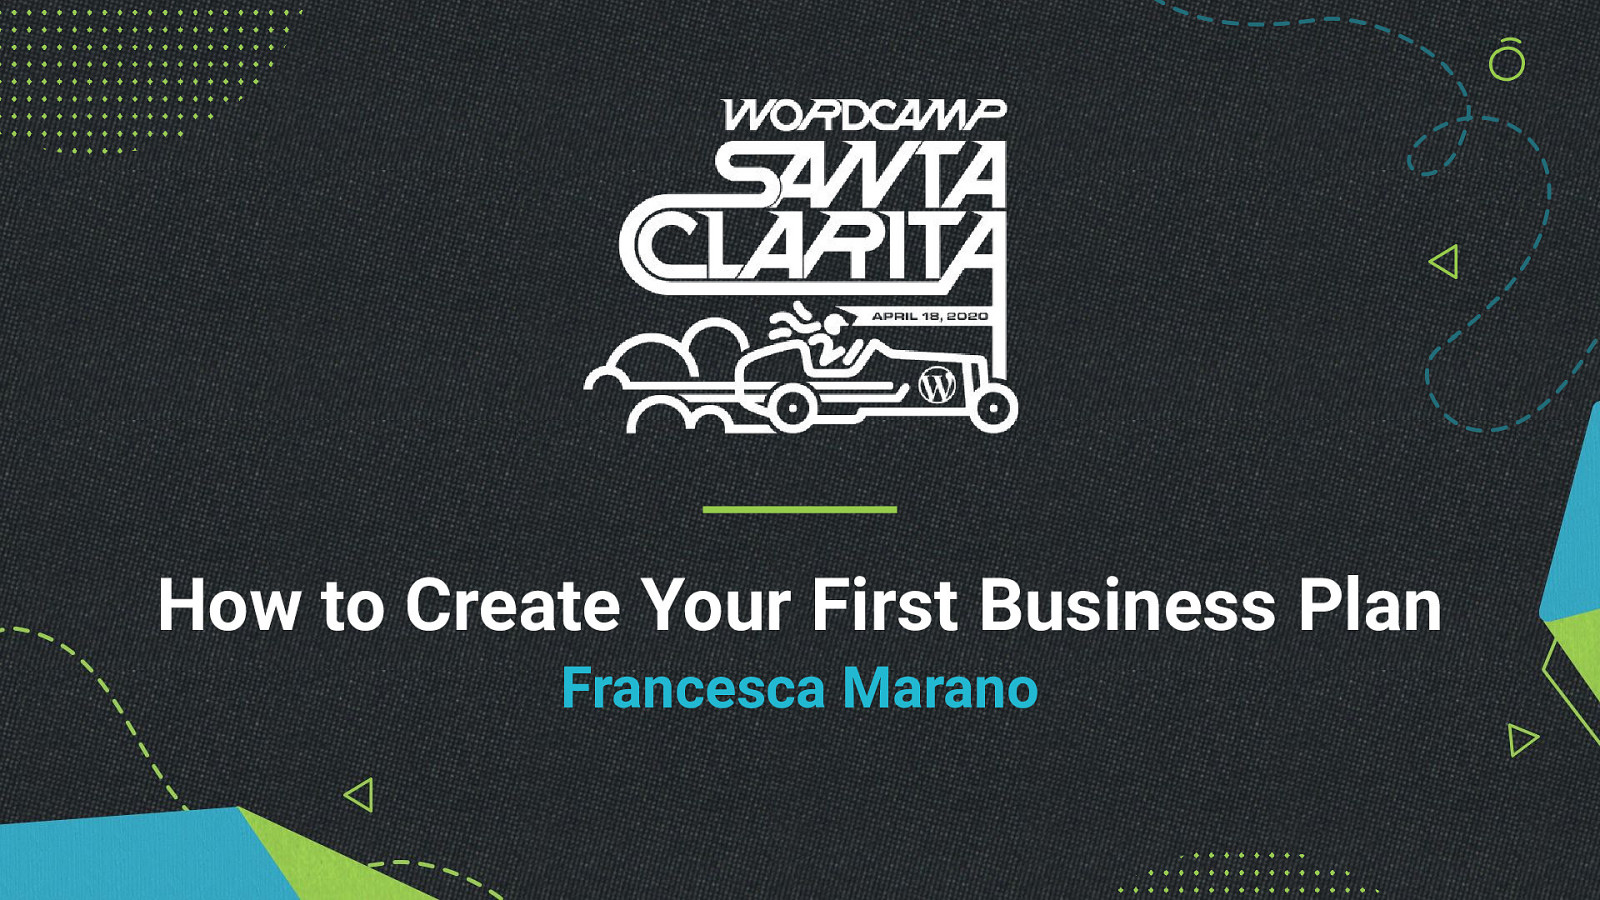 How to Create Your First Business Plan